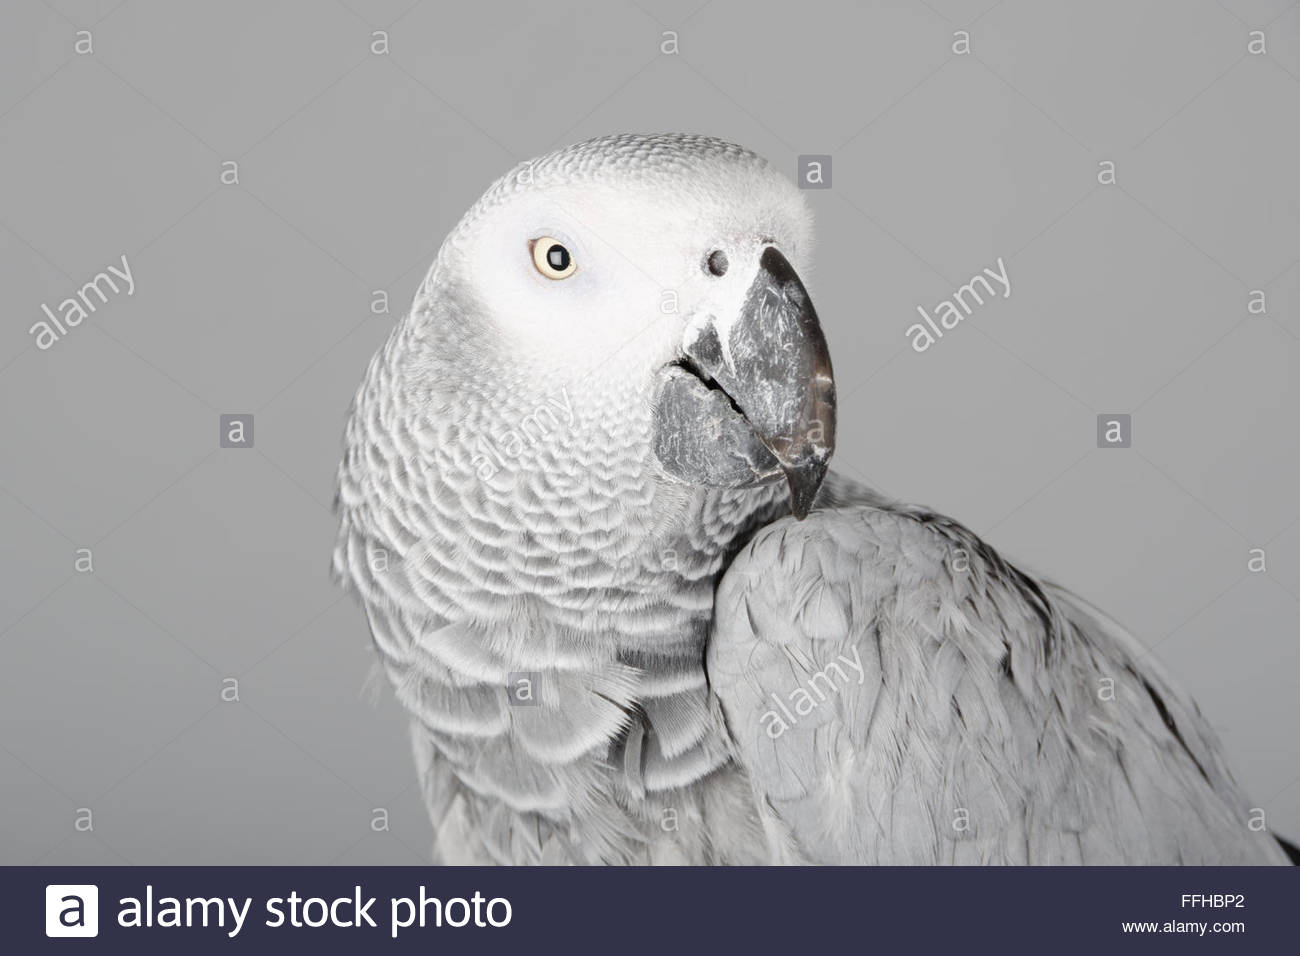 Female African grey parrot called Lola. Stock Photo